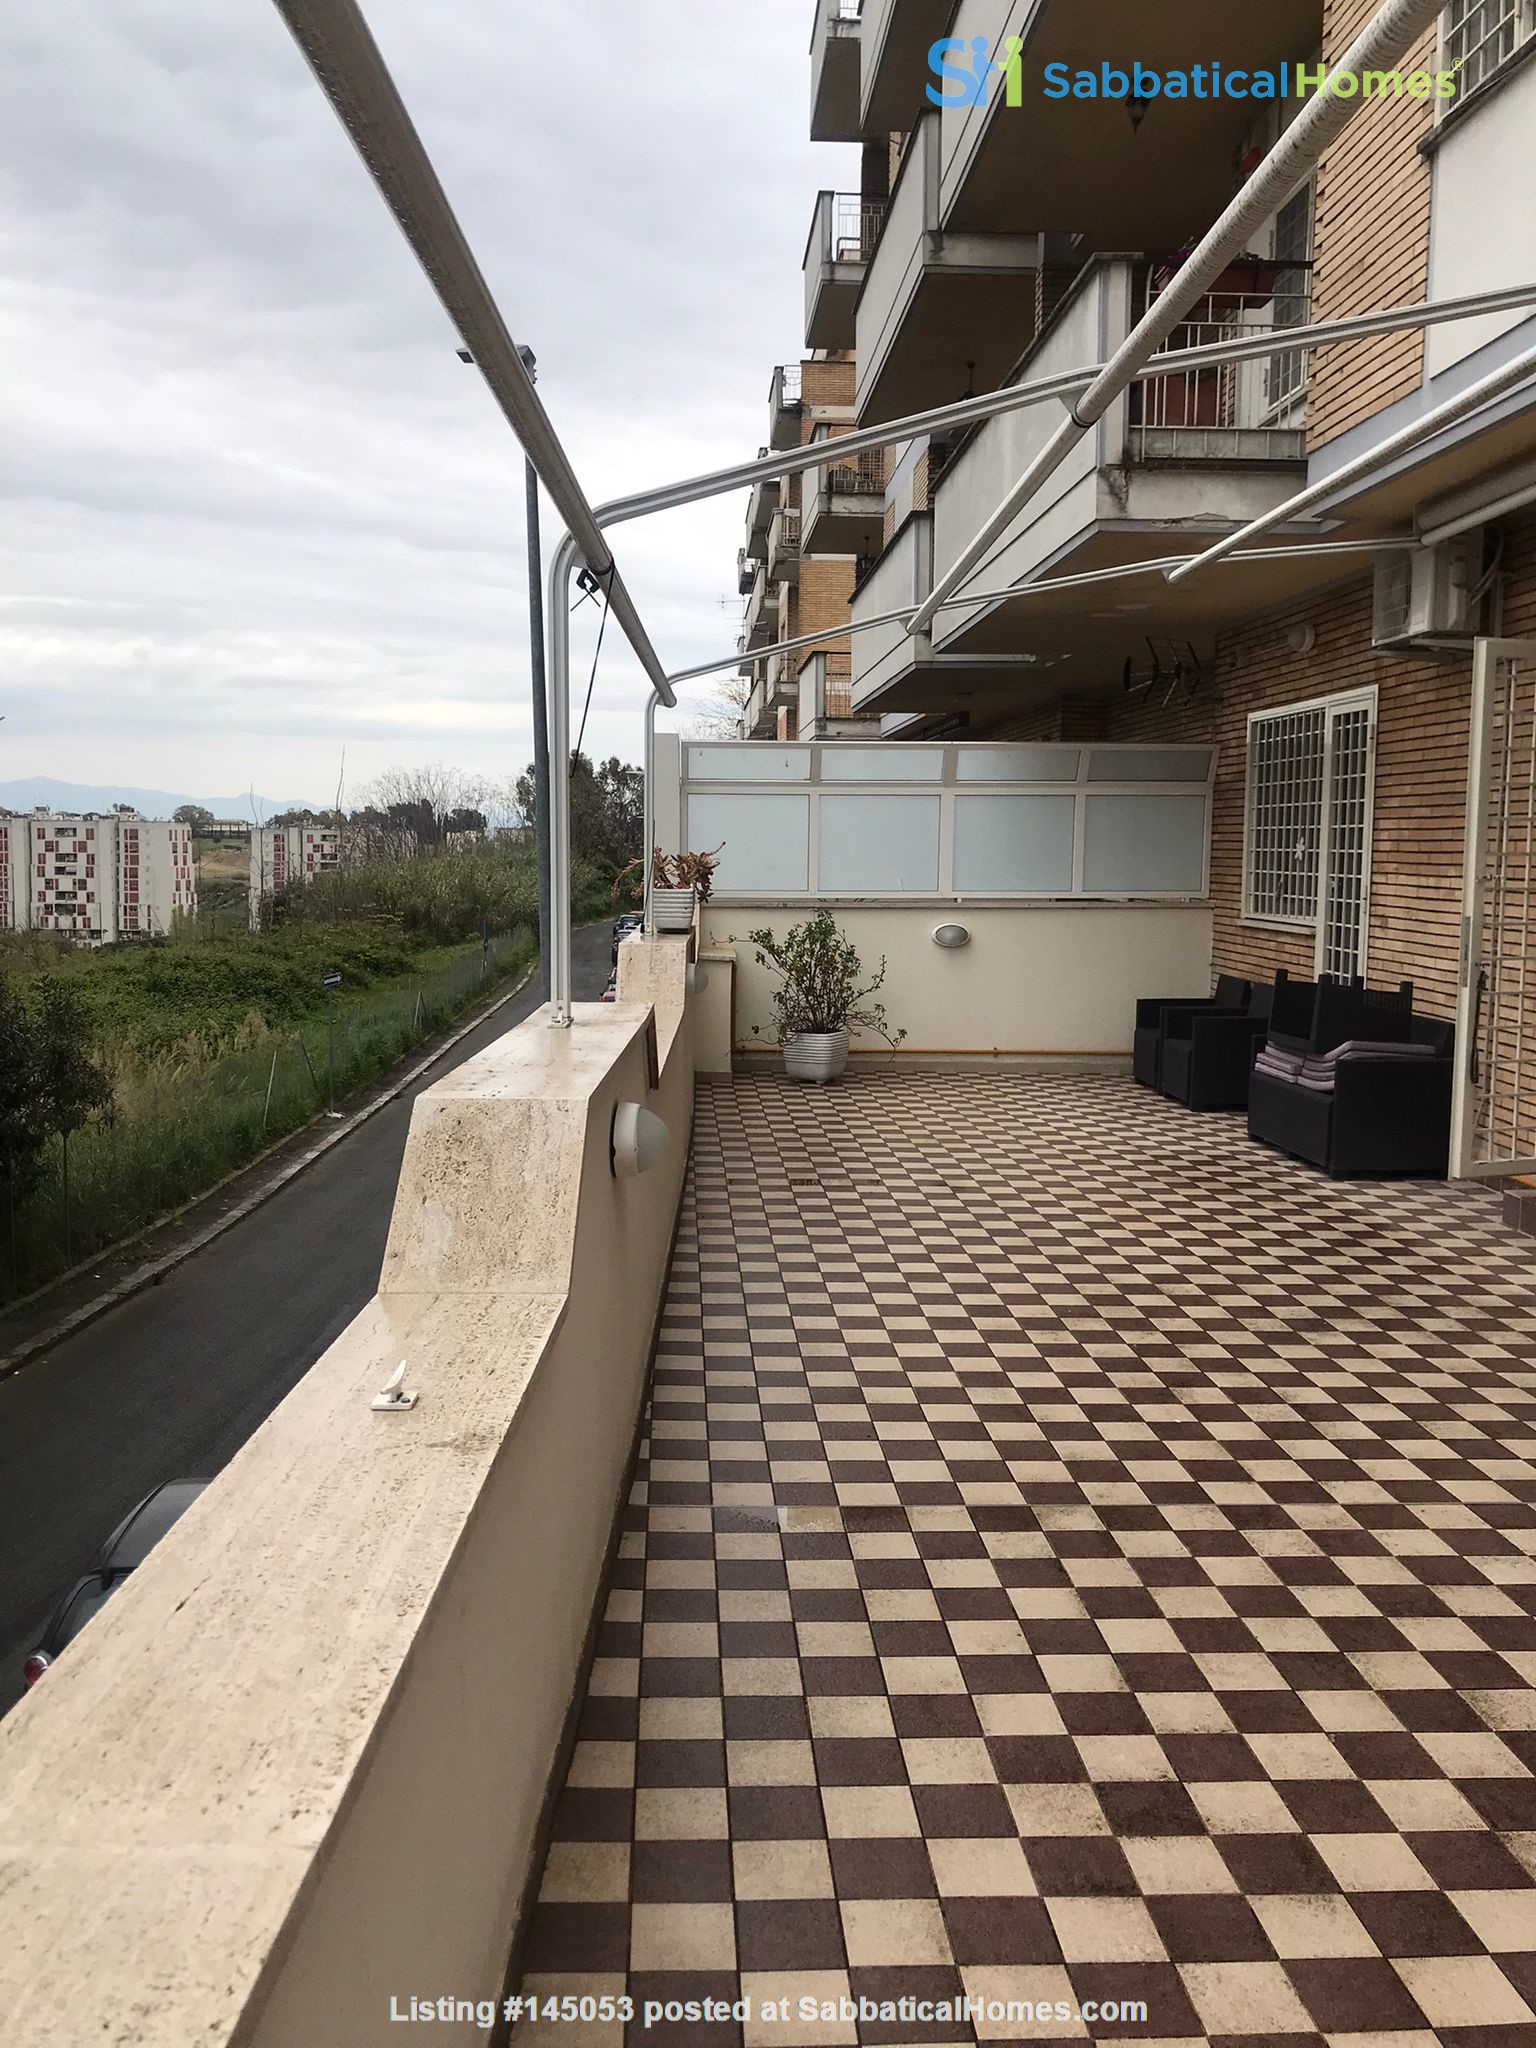 University Sacro Cuore - Brightly apartment with large terrace. Home Rental in Roma, Lazio, Italy 9